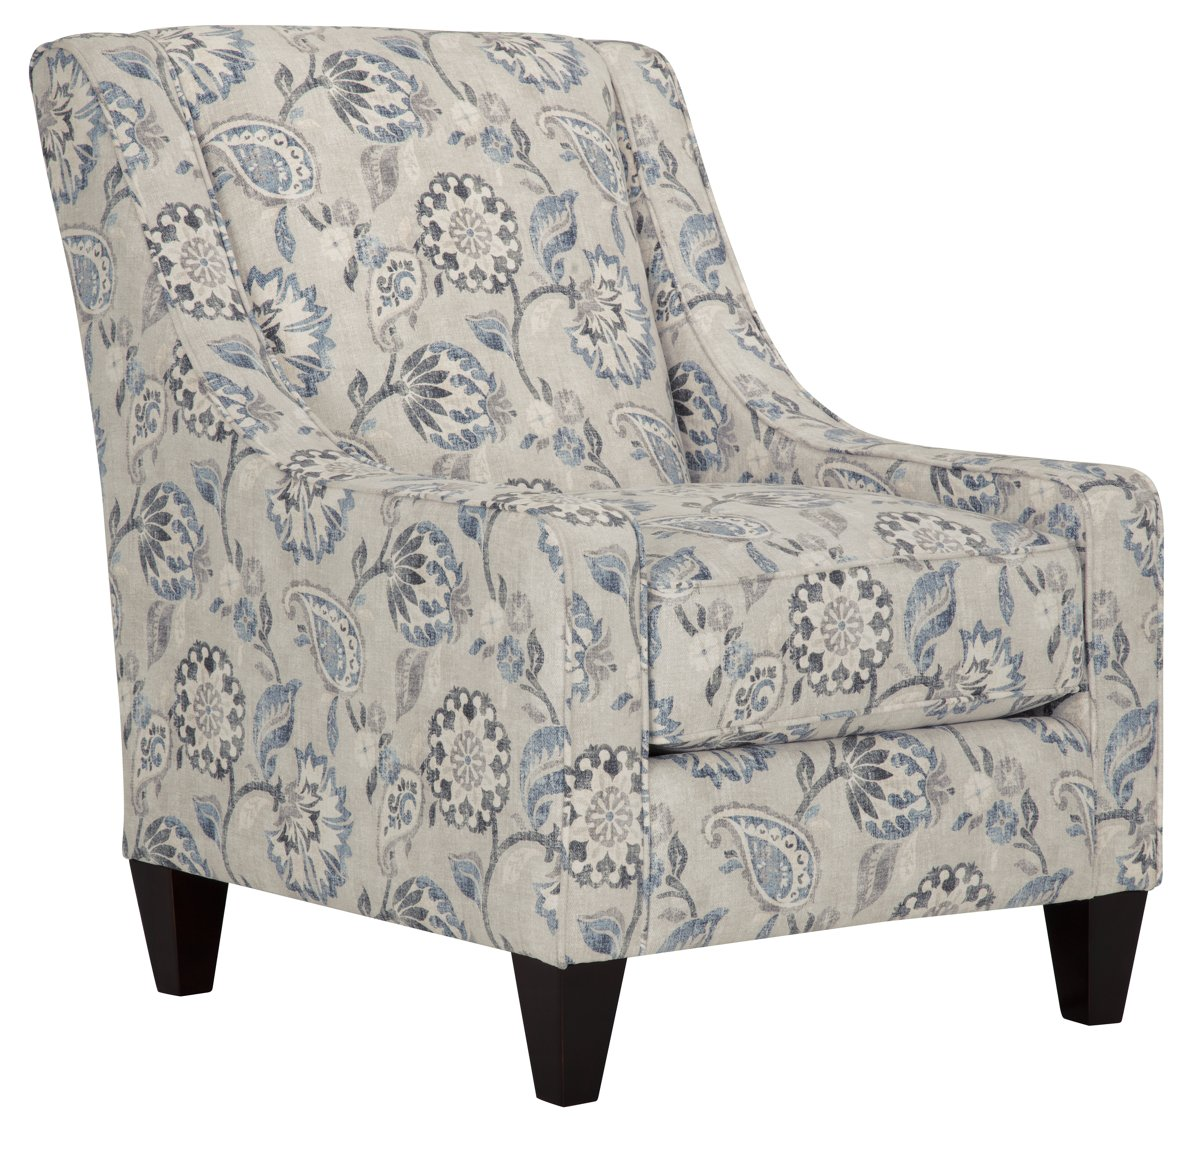 Sylvie blue fabric accent chair